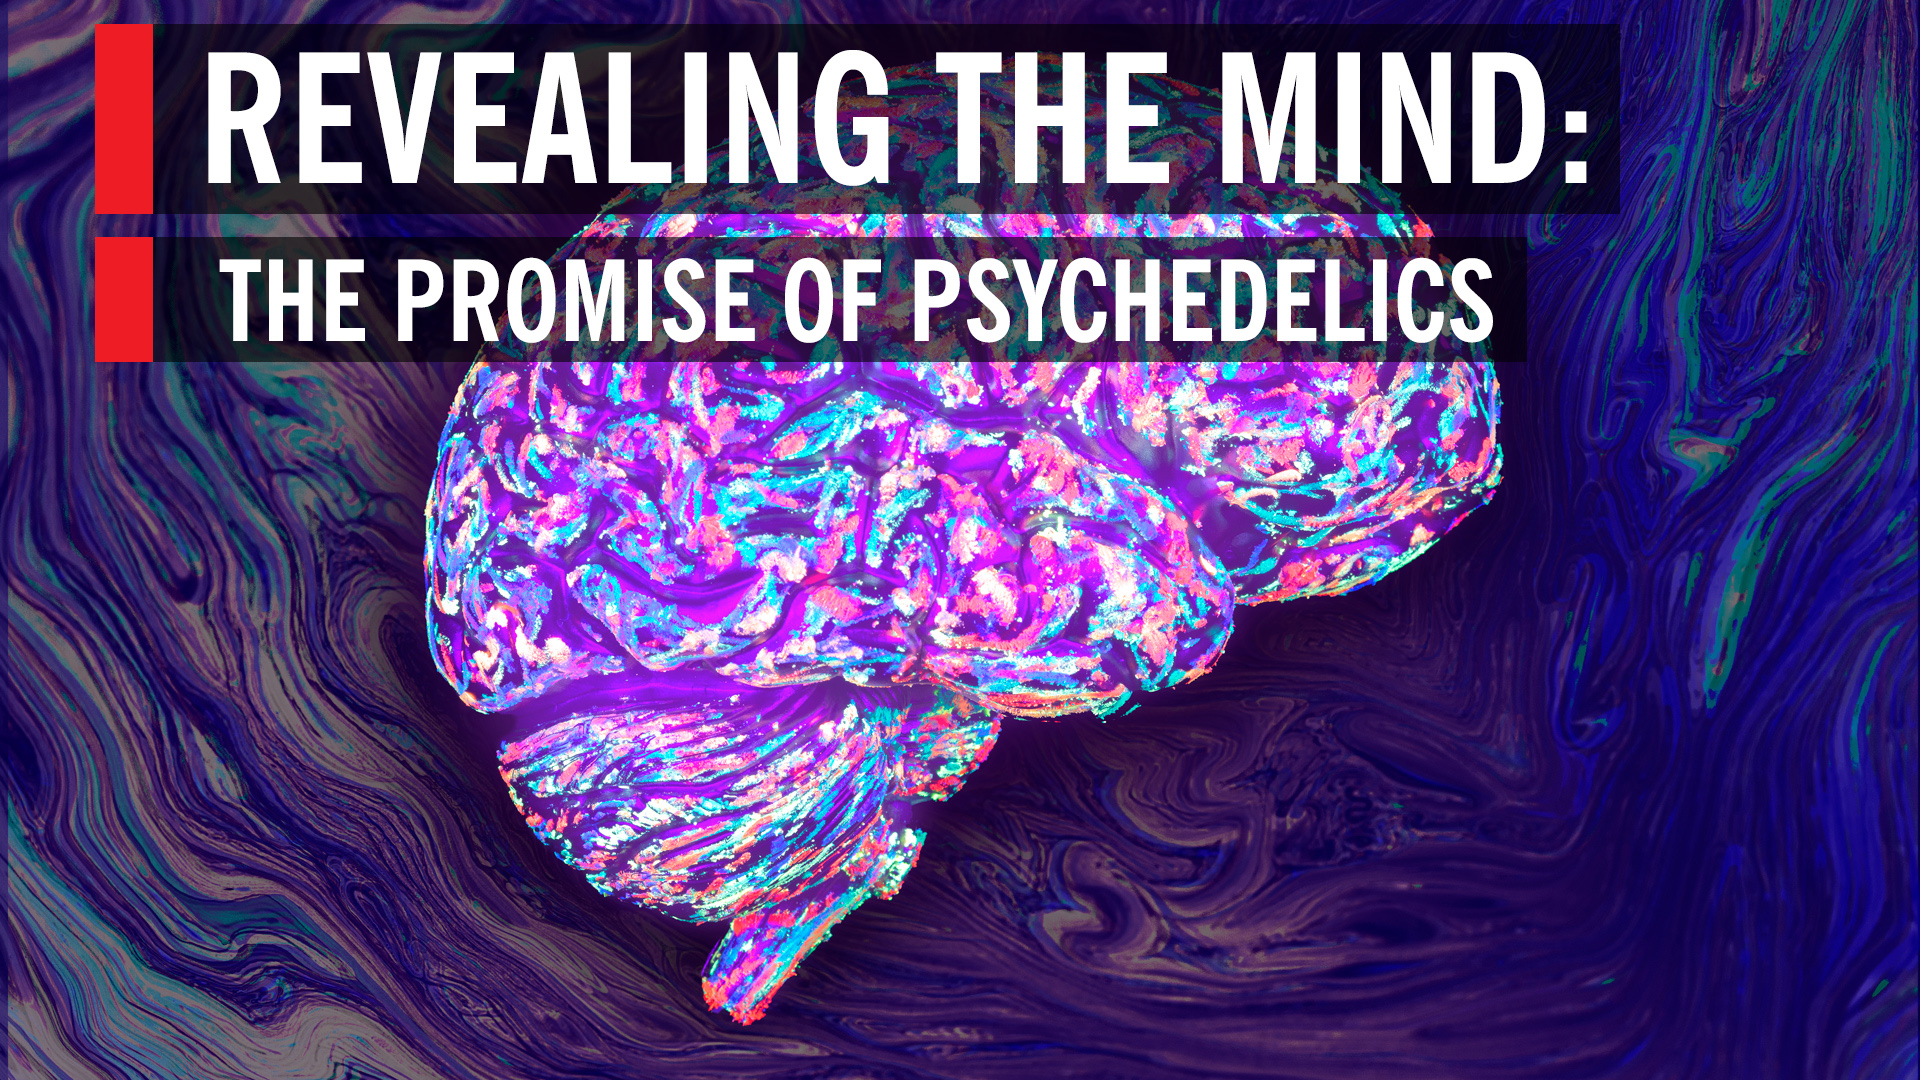 Revealing the Mind: The Promise of Psychedelics | World